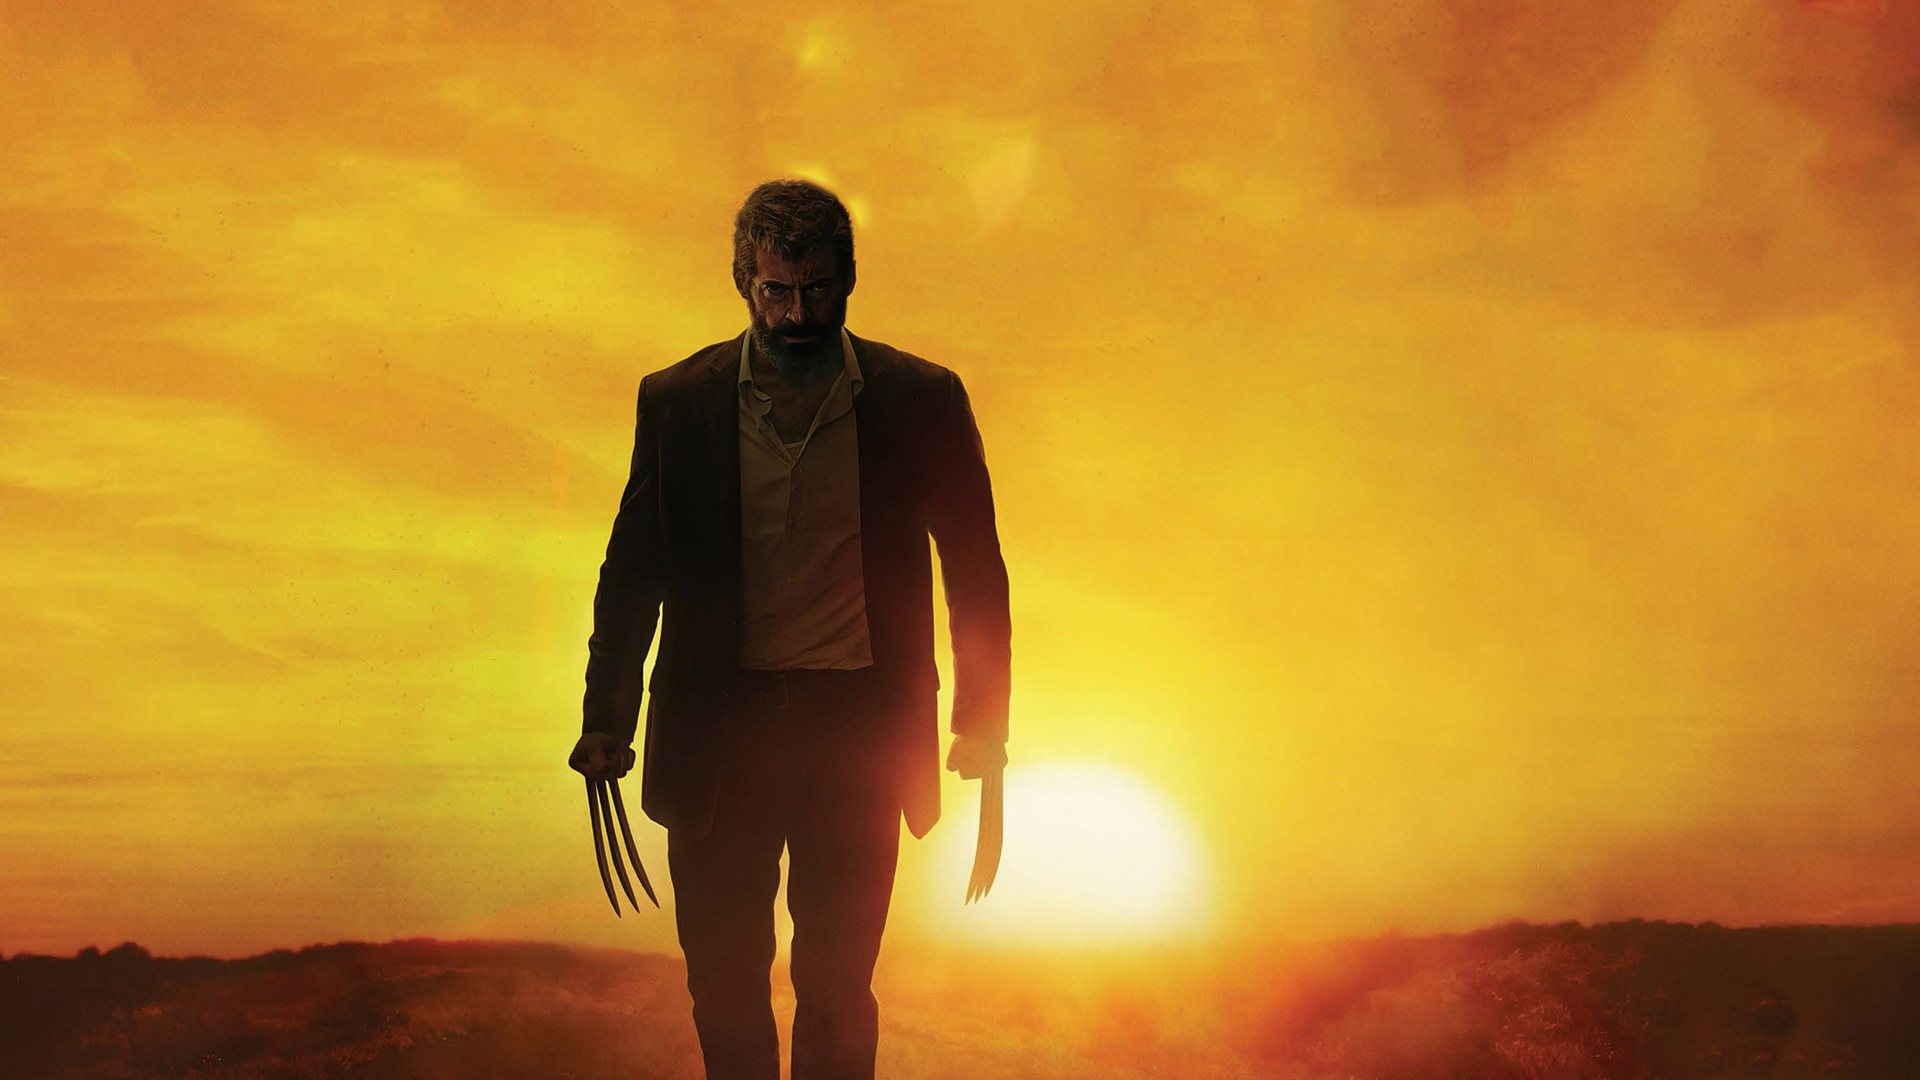 Logan 2017 Movie Hd Wallpaper: 1920x1080 Hugh Jackman Logan 4k Laptop Full HD 1080P HD 4k